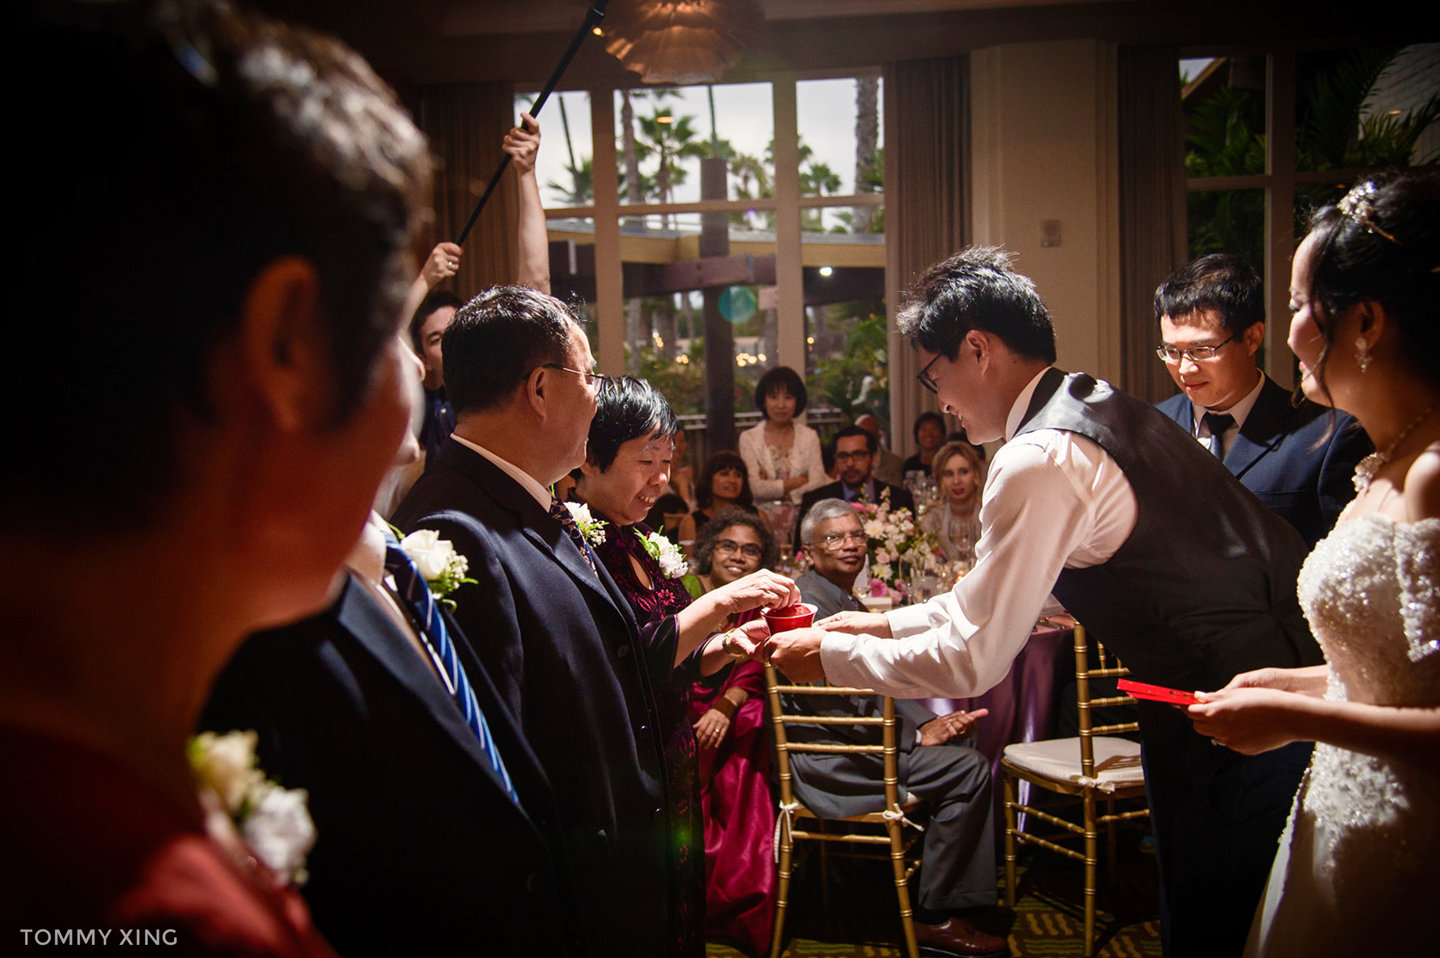 Paradise Point Resort Wedding Xiaolu & Bin San Diego 圣地亚哥婚礼摄影跟拍 Tommy Xing Photography 洛杉矶婚礼婚纱照摄影师 268.jpg